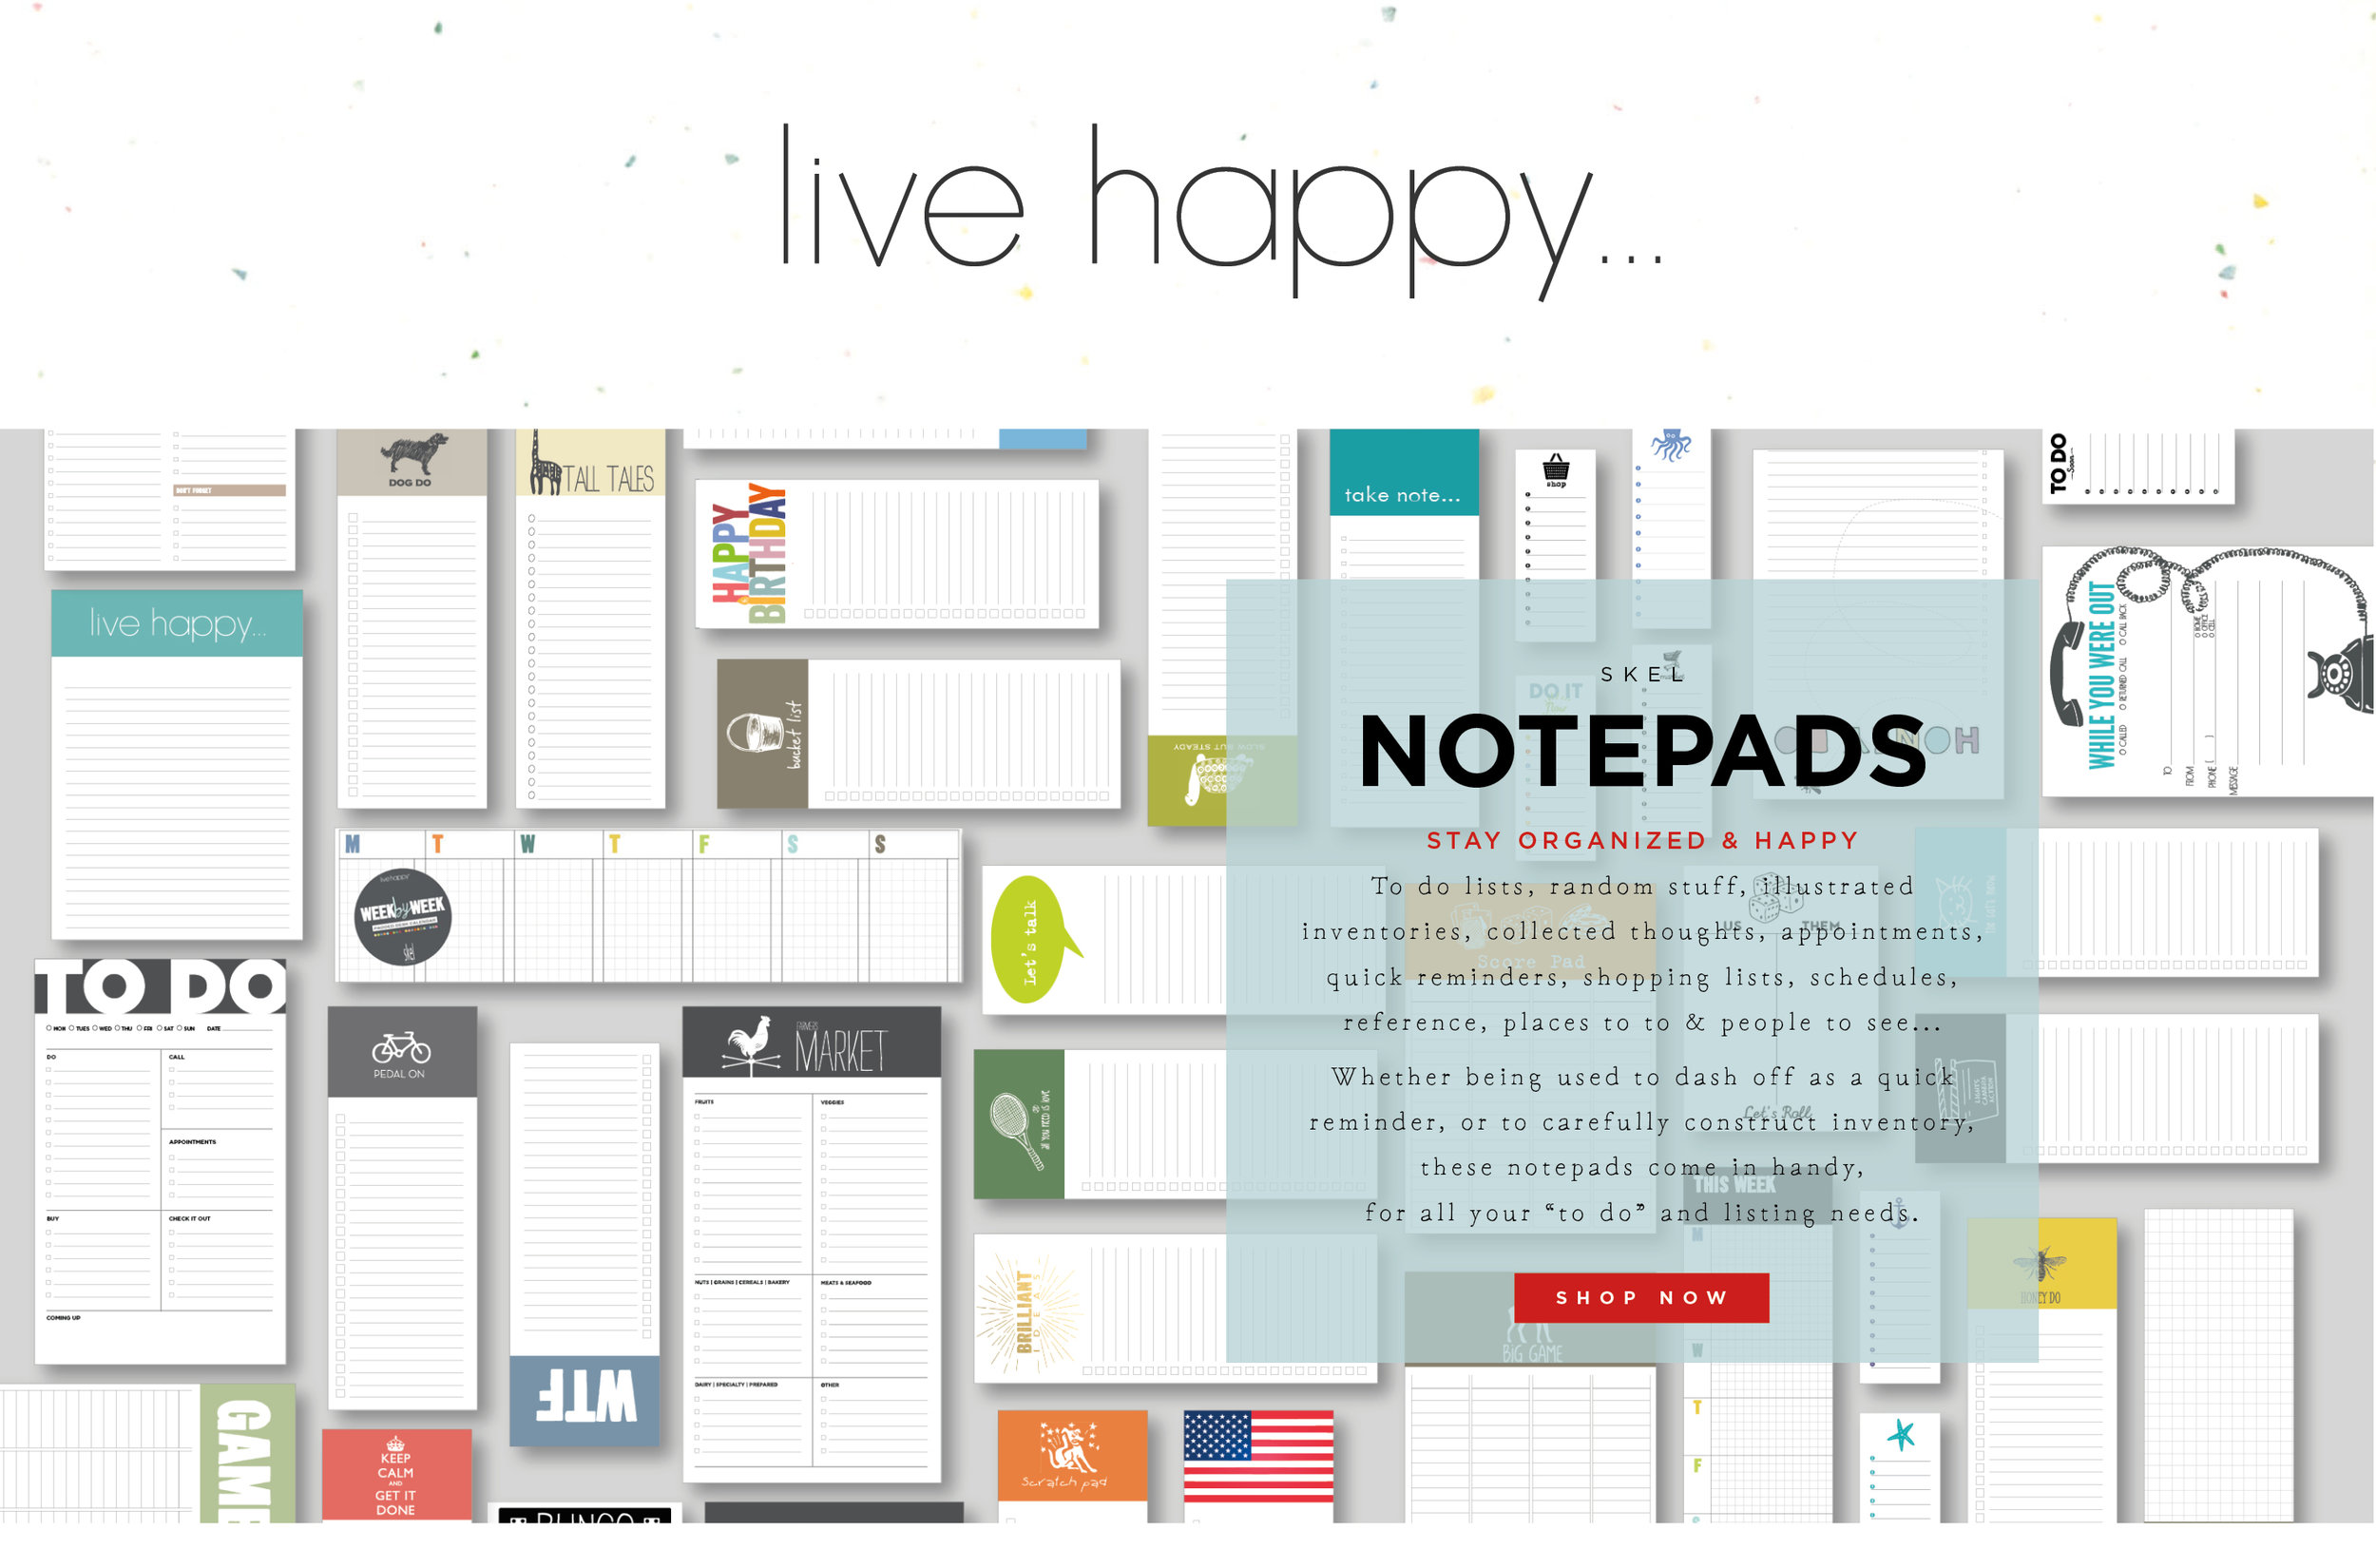 banner_livehappy+notepads.jpg